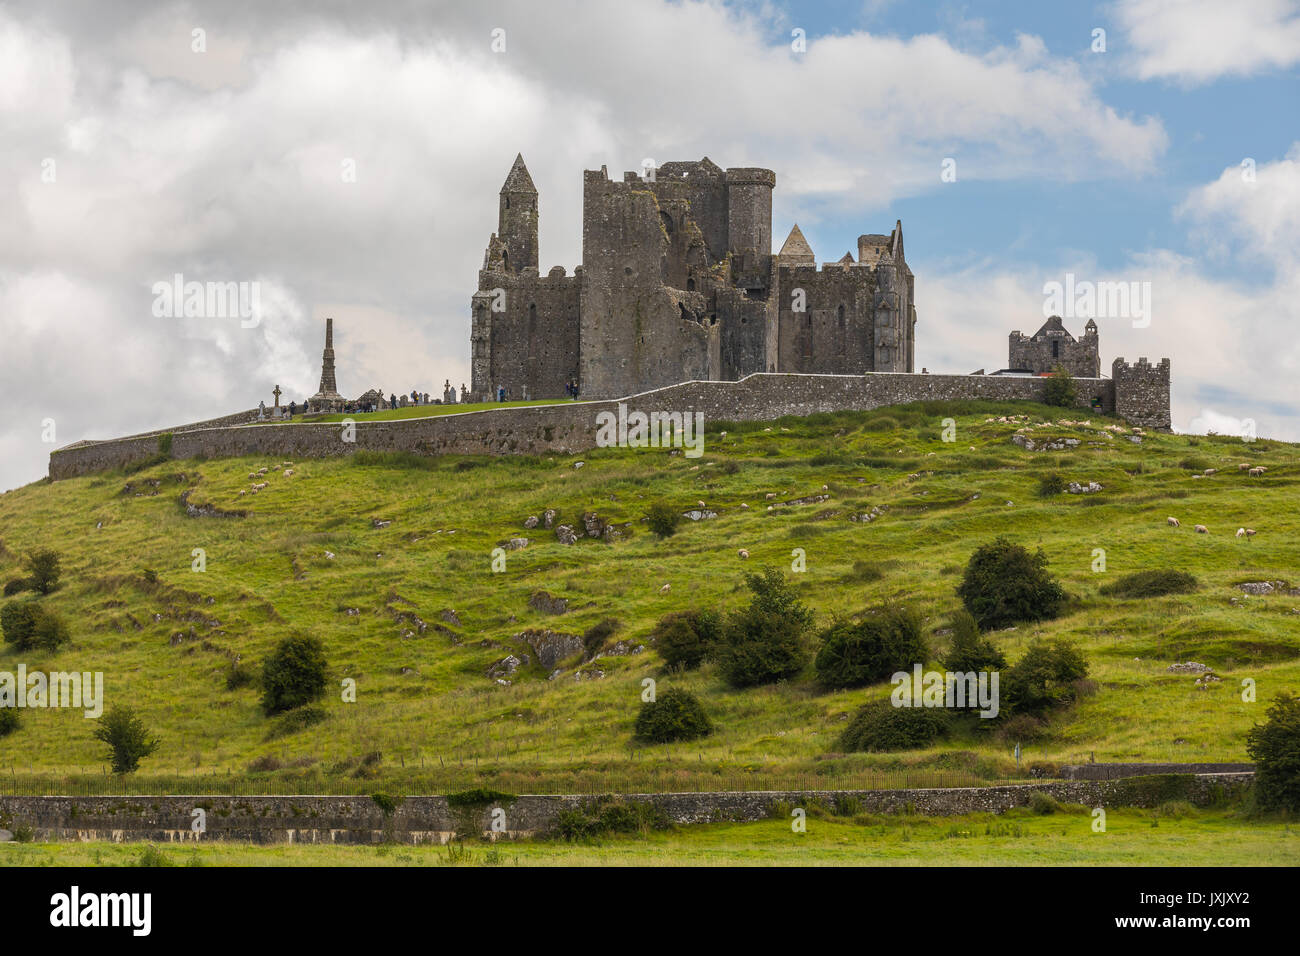 The Rock of Cashel, also known as Cashel of the Kings and St. Patrick's Rock, is a historic site located at Cashel, County T - Stock Image